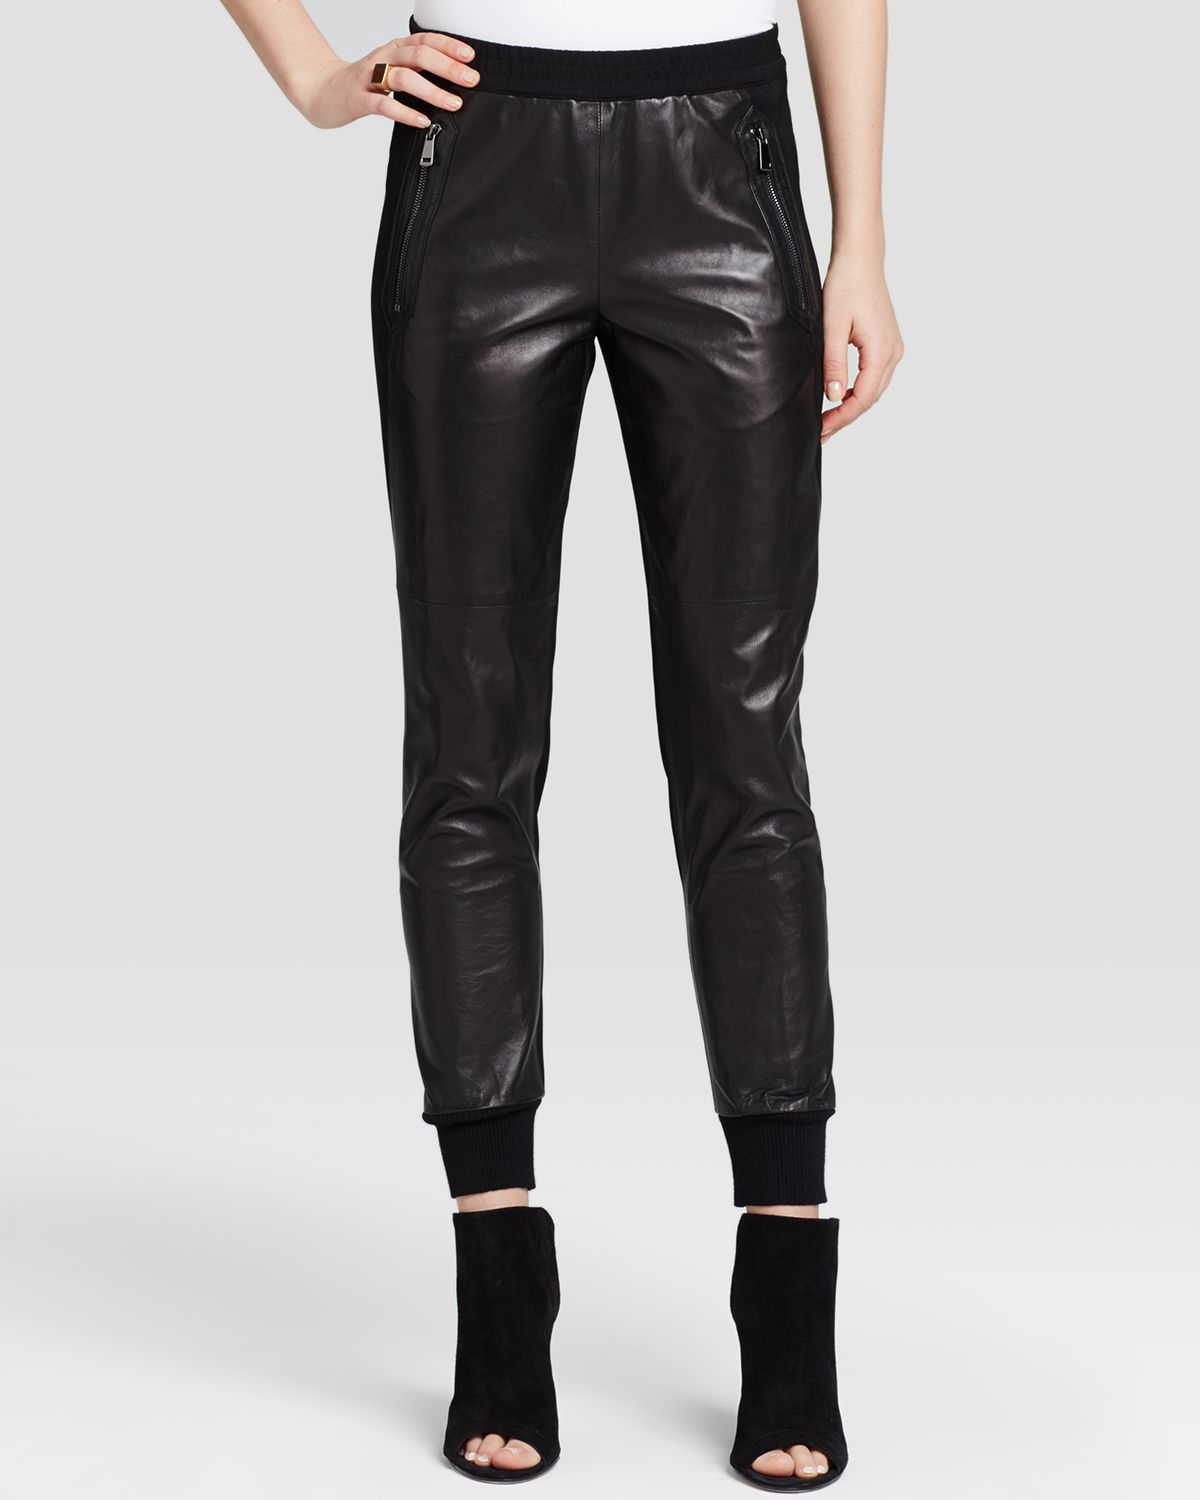 Elegant Leather Joggers On